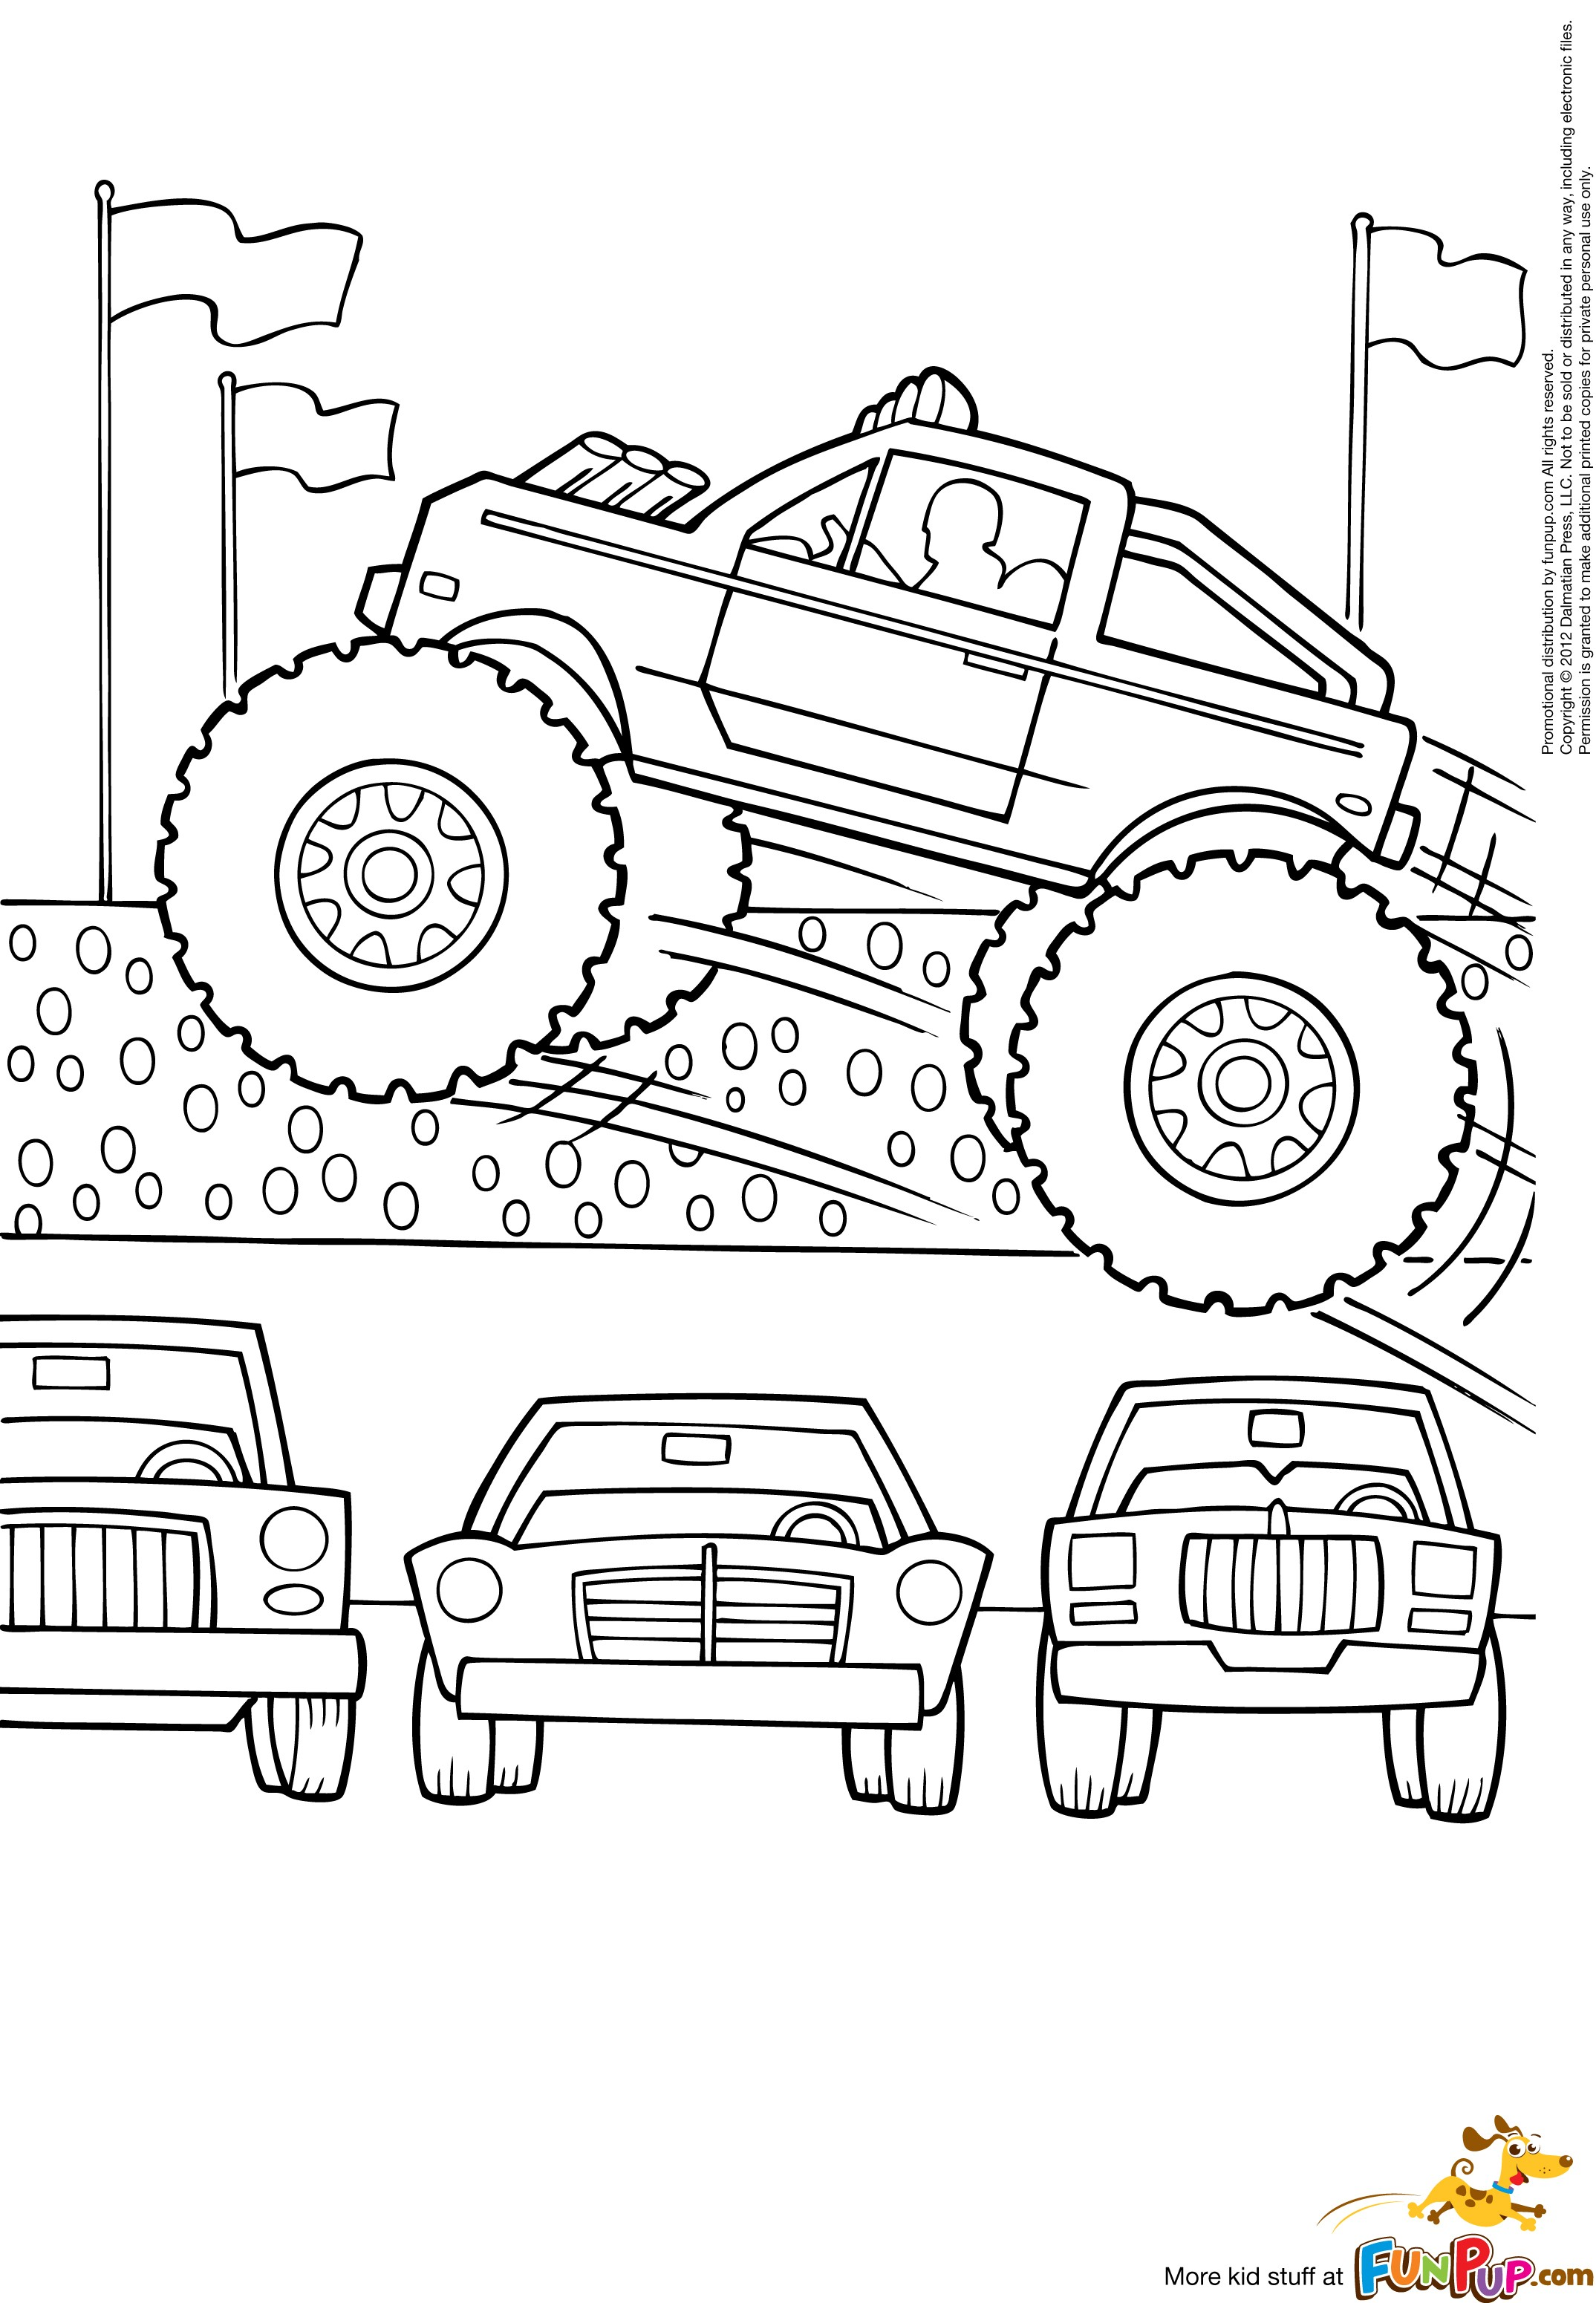 Grave Digger Monster Truck Drawing at GetDrawings Free